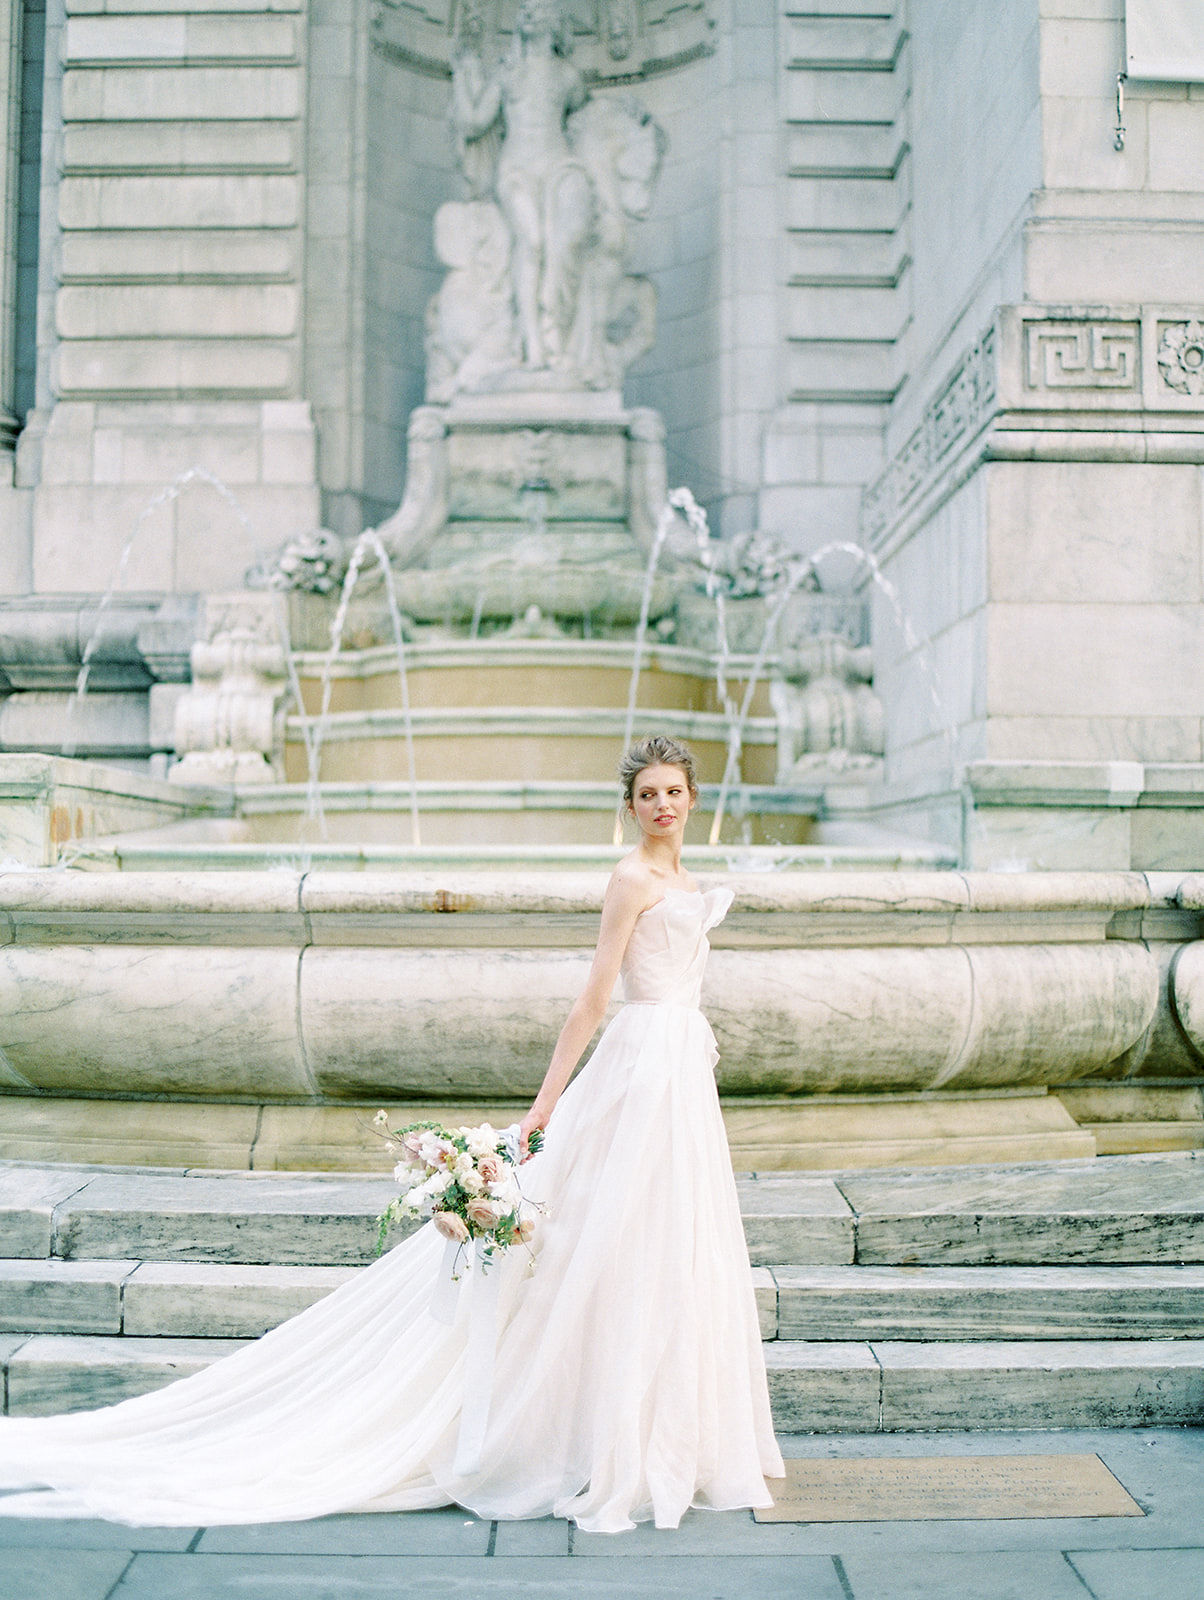 alla prima draped linen wedding gown at new york public library3.jpg